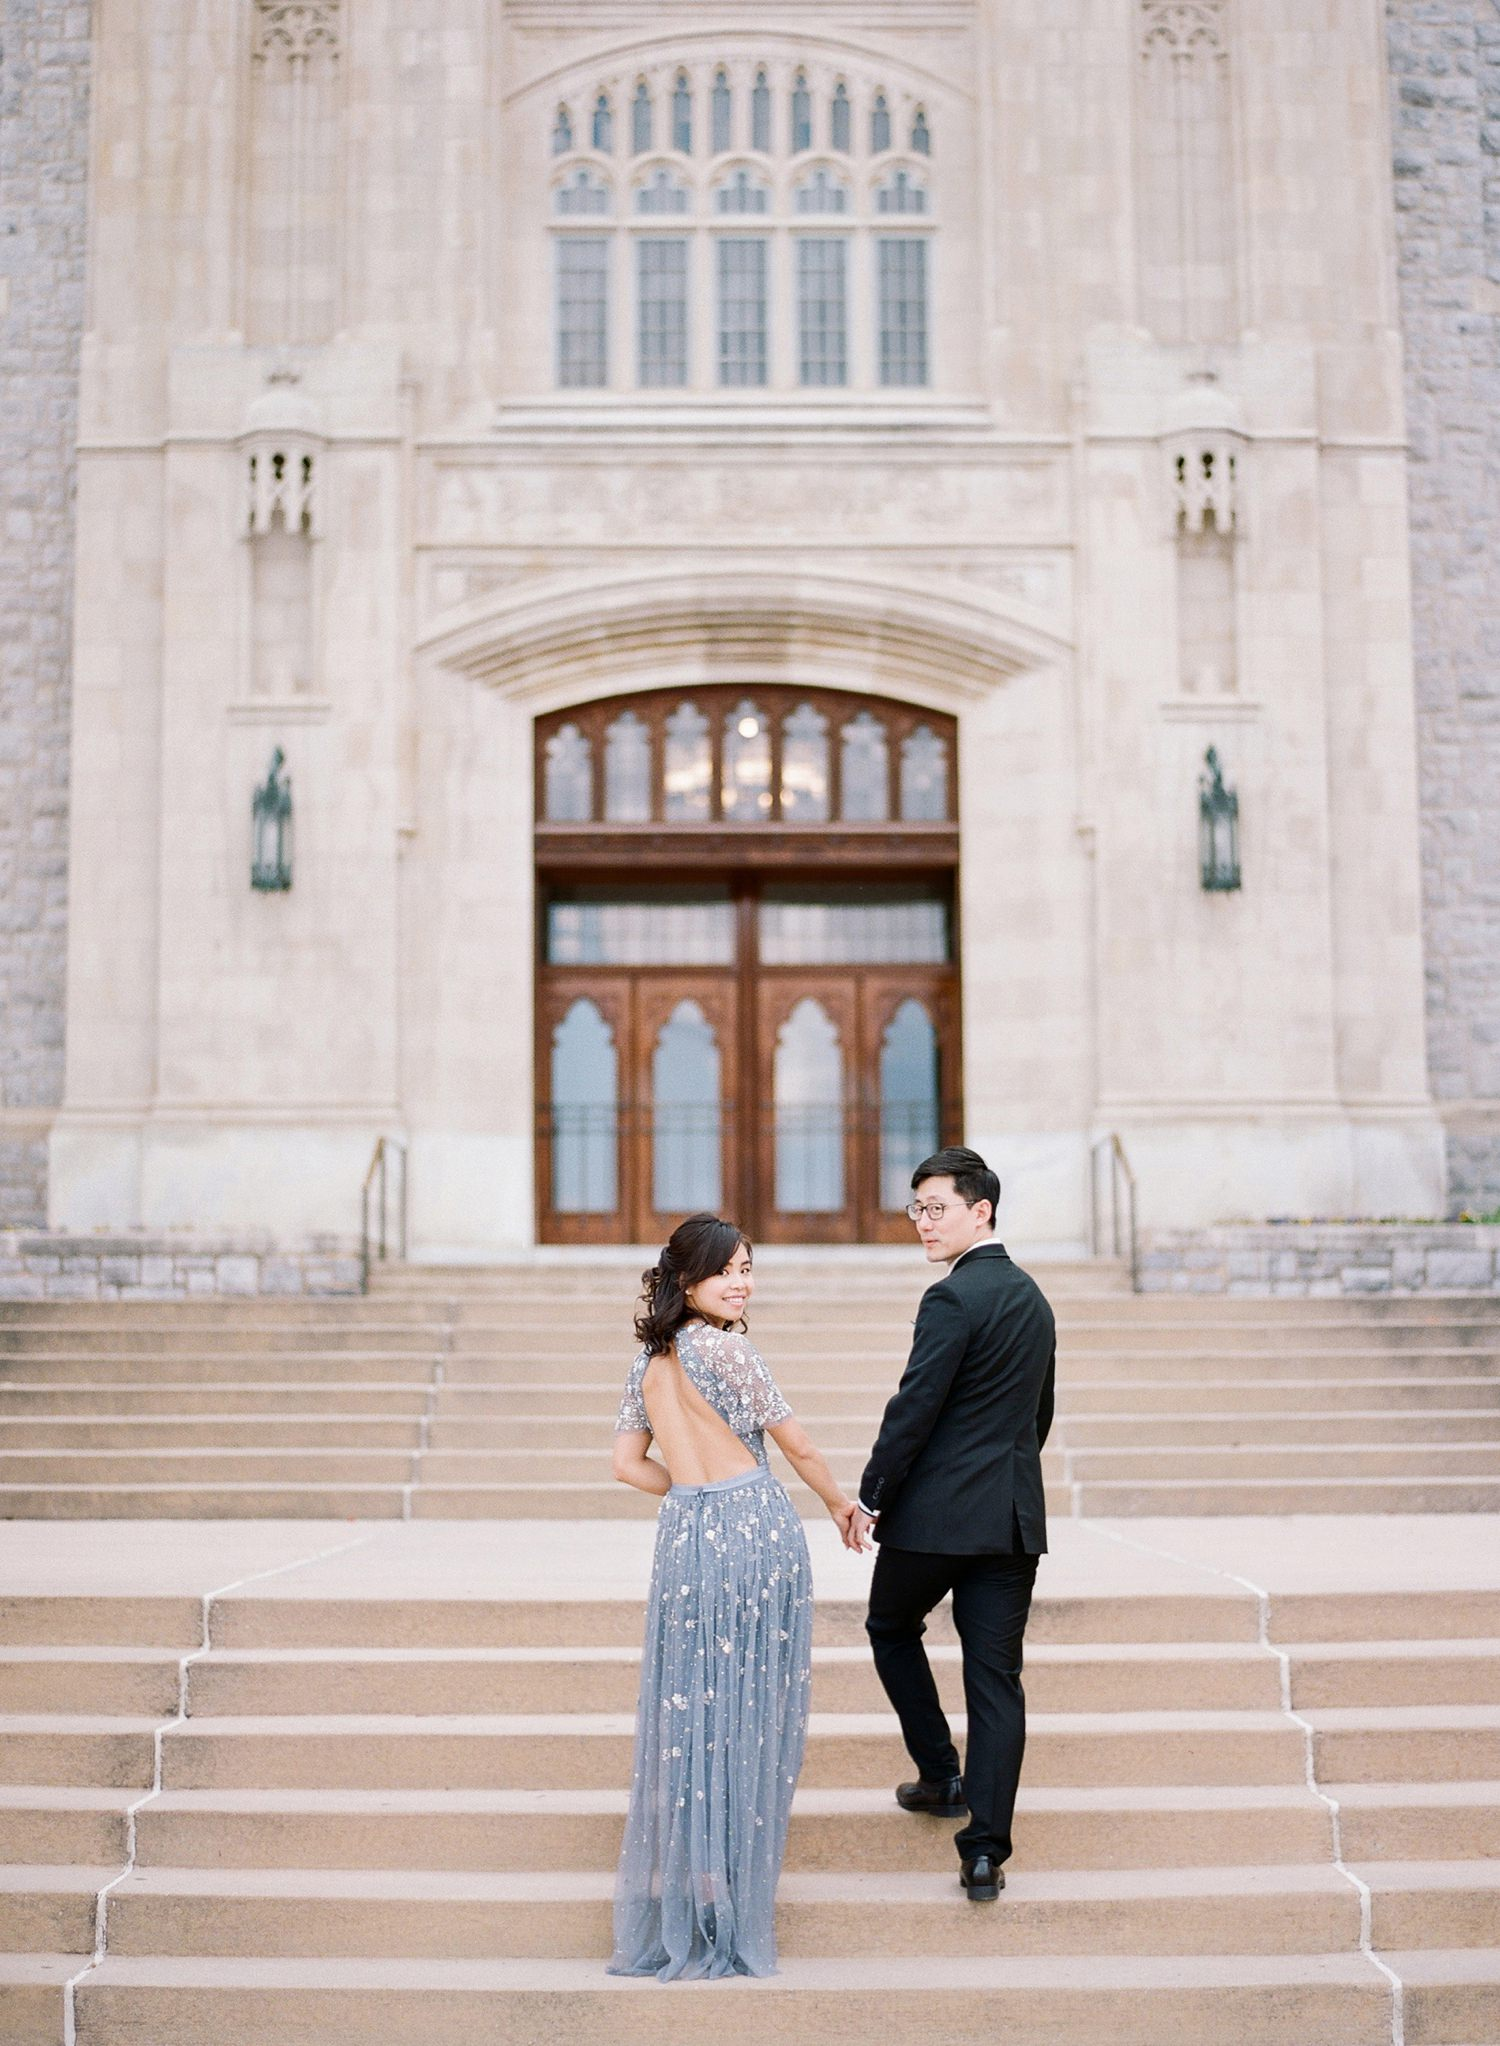 University Engagement Session at Virginia Tech